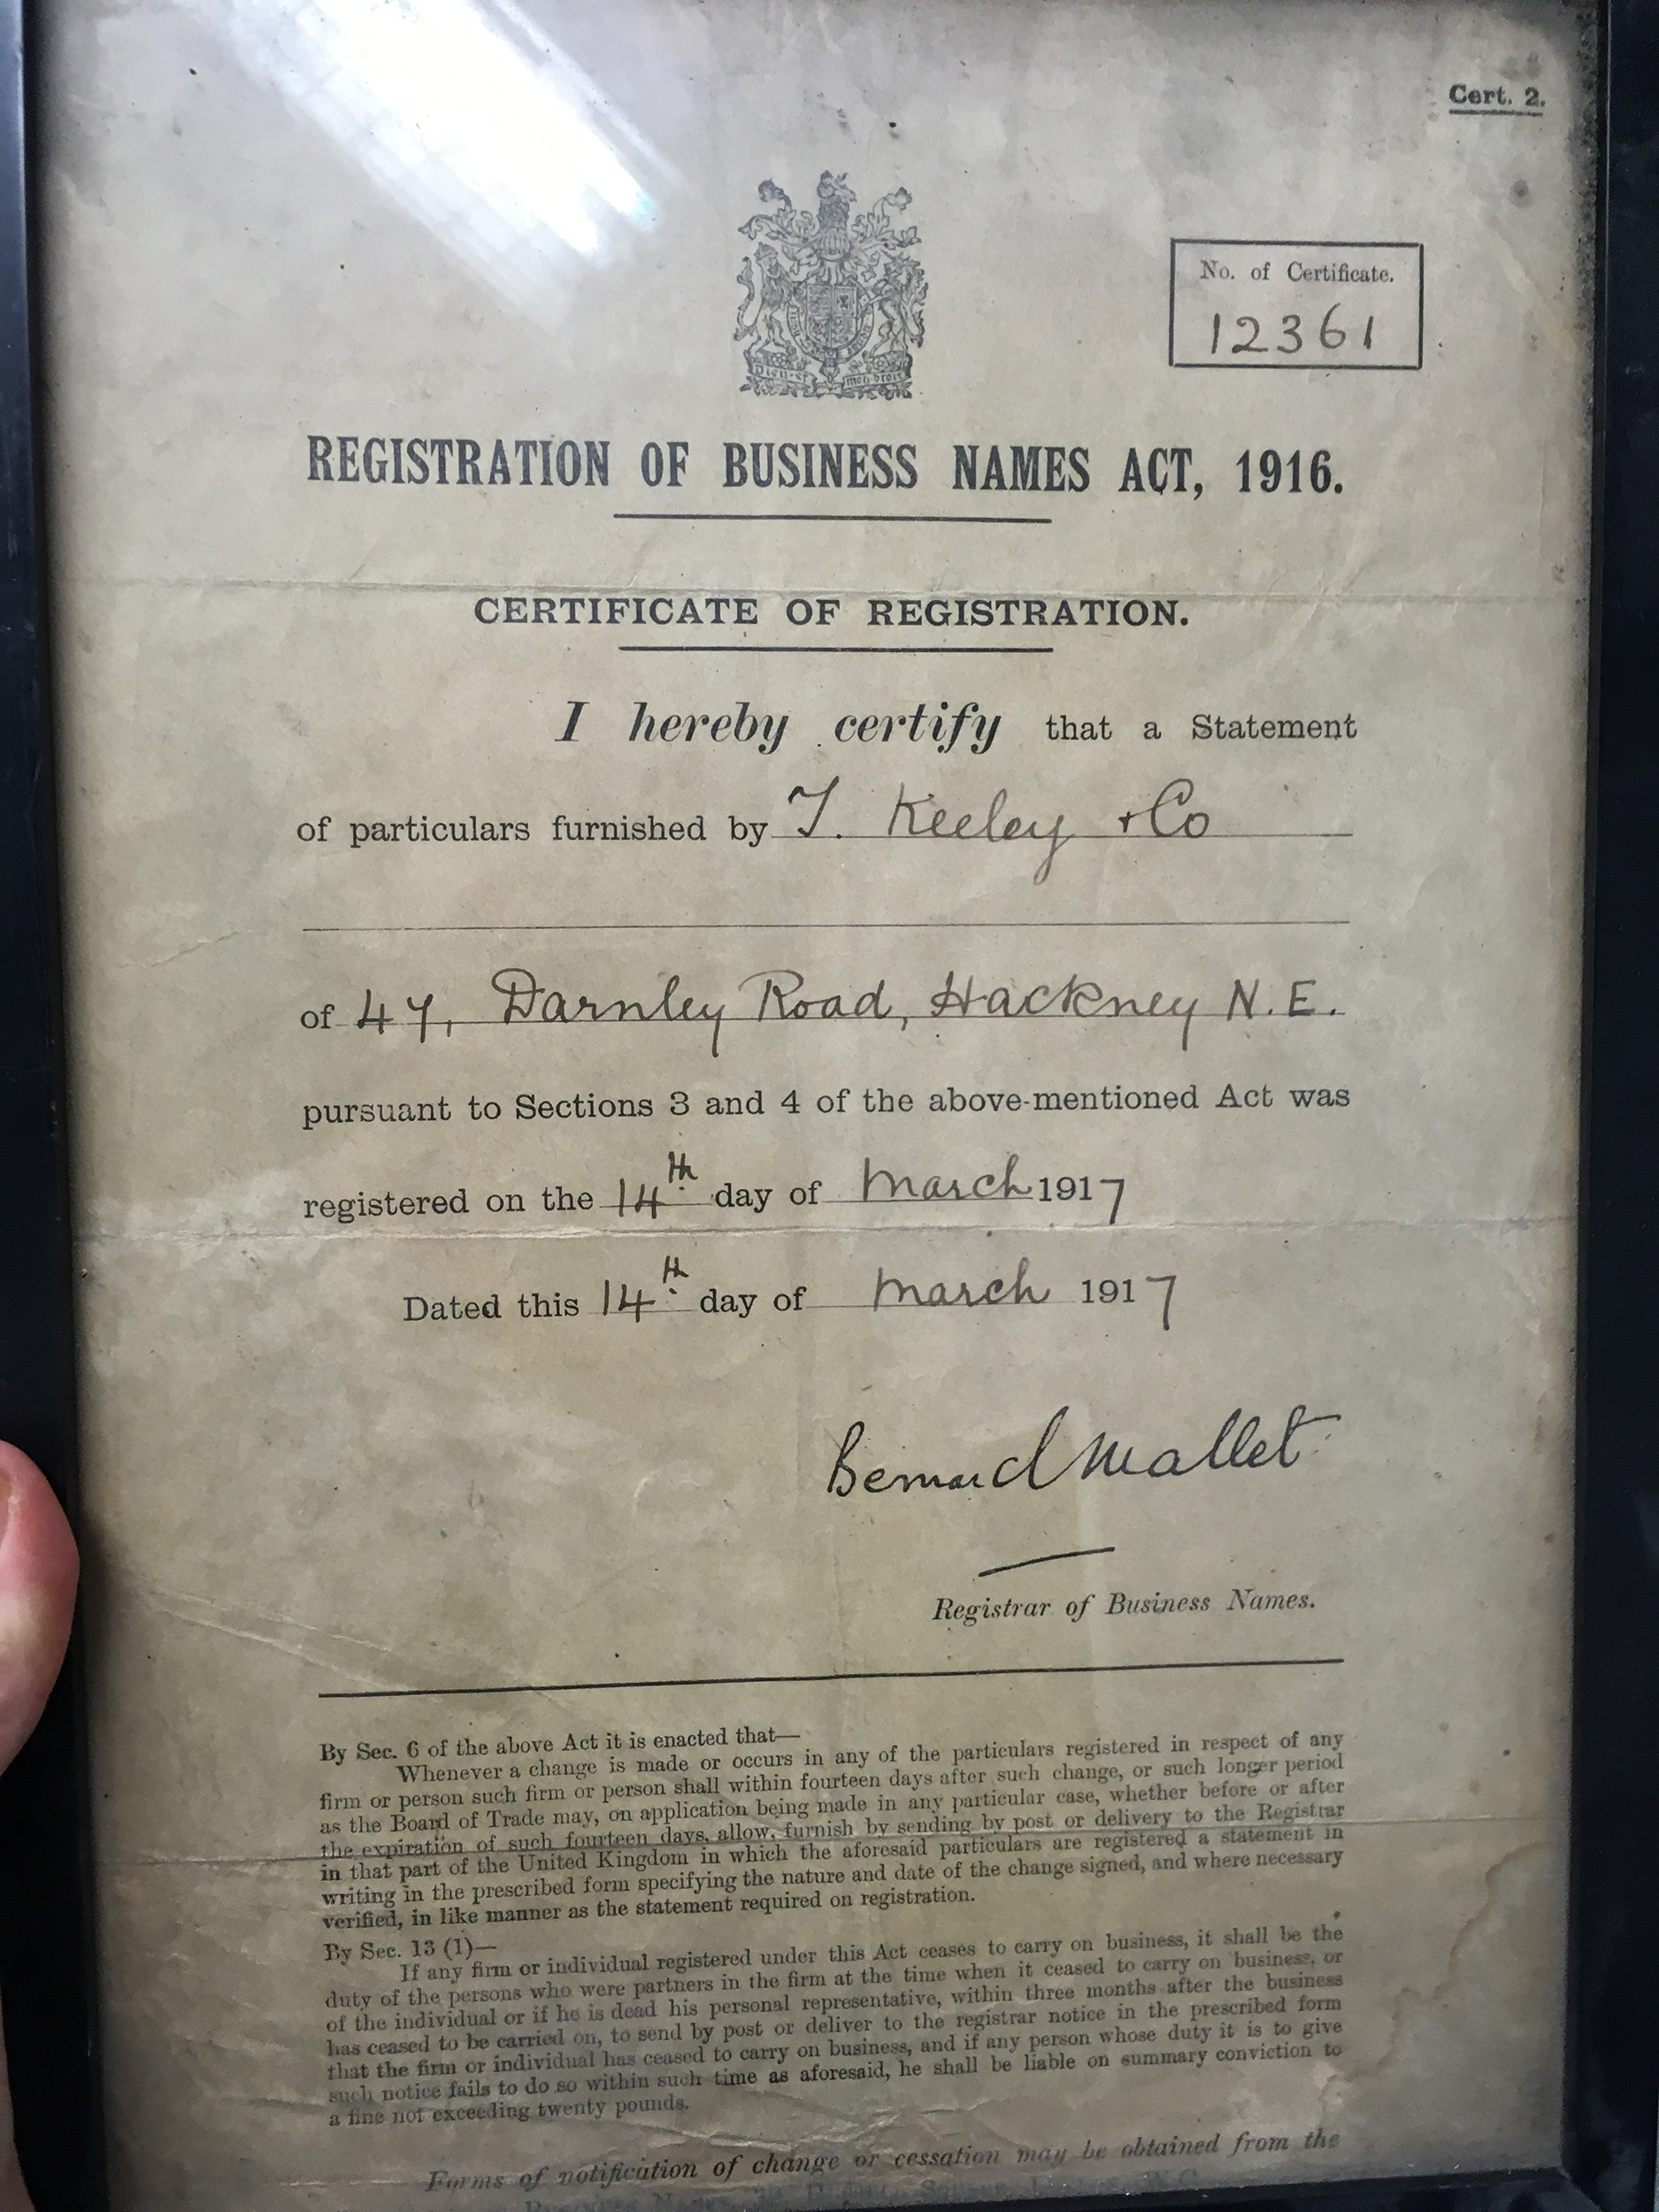 Photo of old certificate in frame